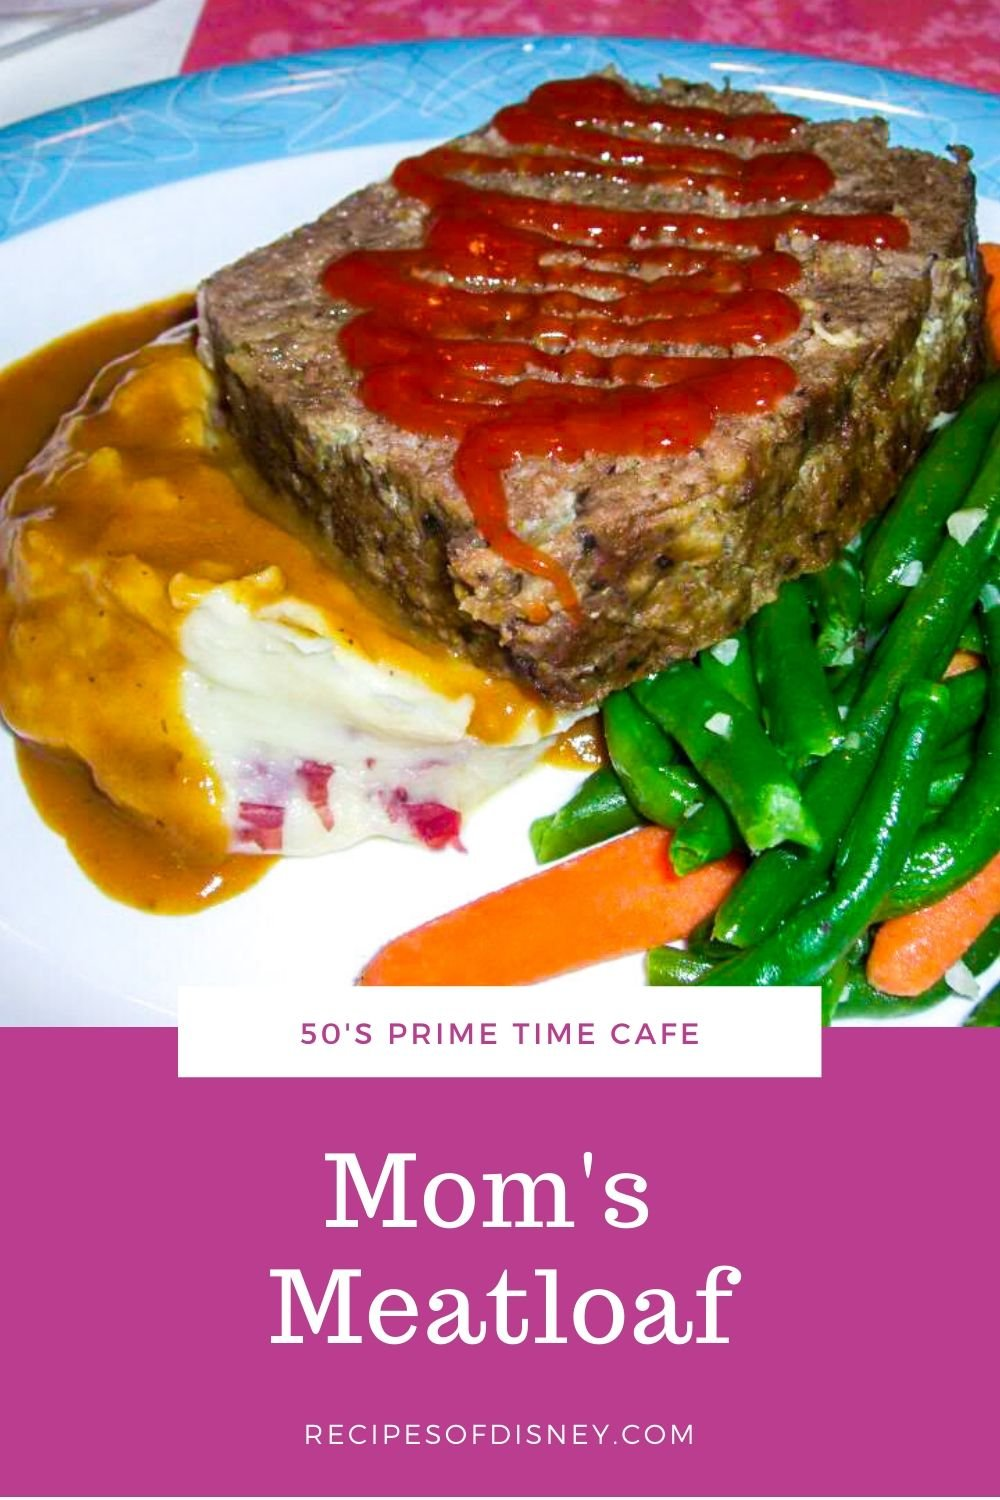 1632457810_921_Mom039s-Meatloaf-50039s-Prime-Time-Cafe-%E2%8B%86-The-Recipes-Of